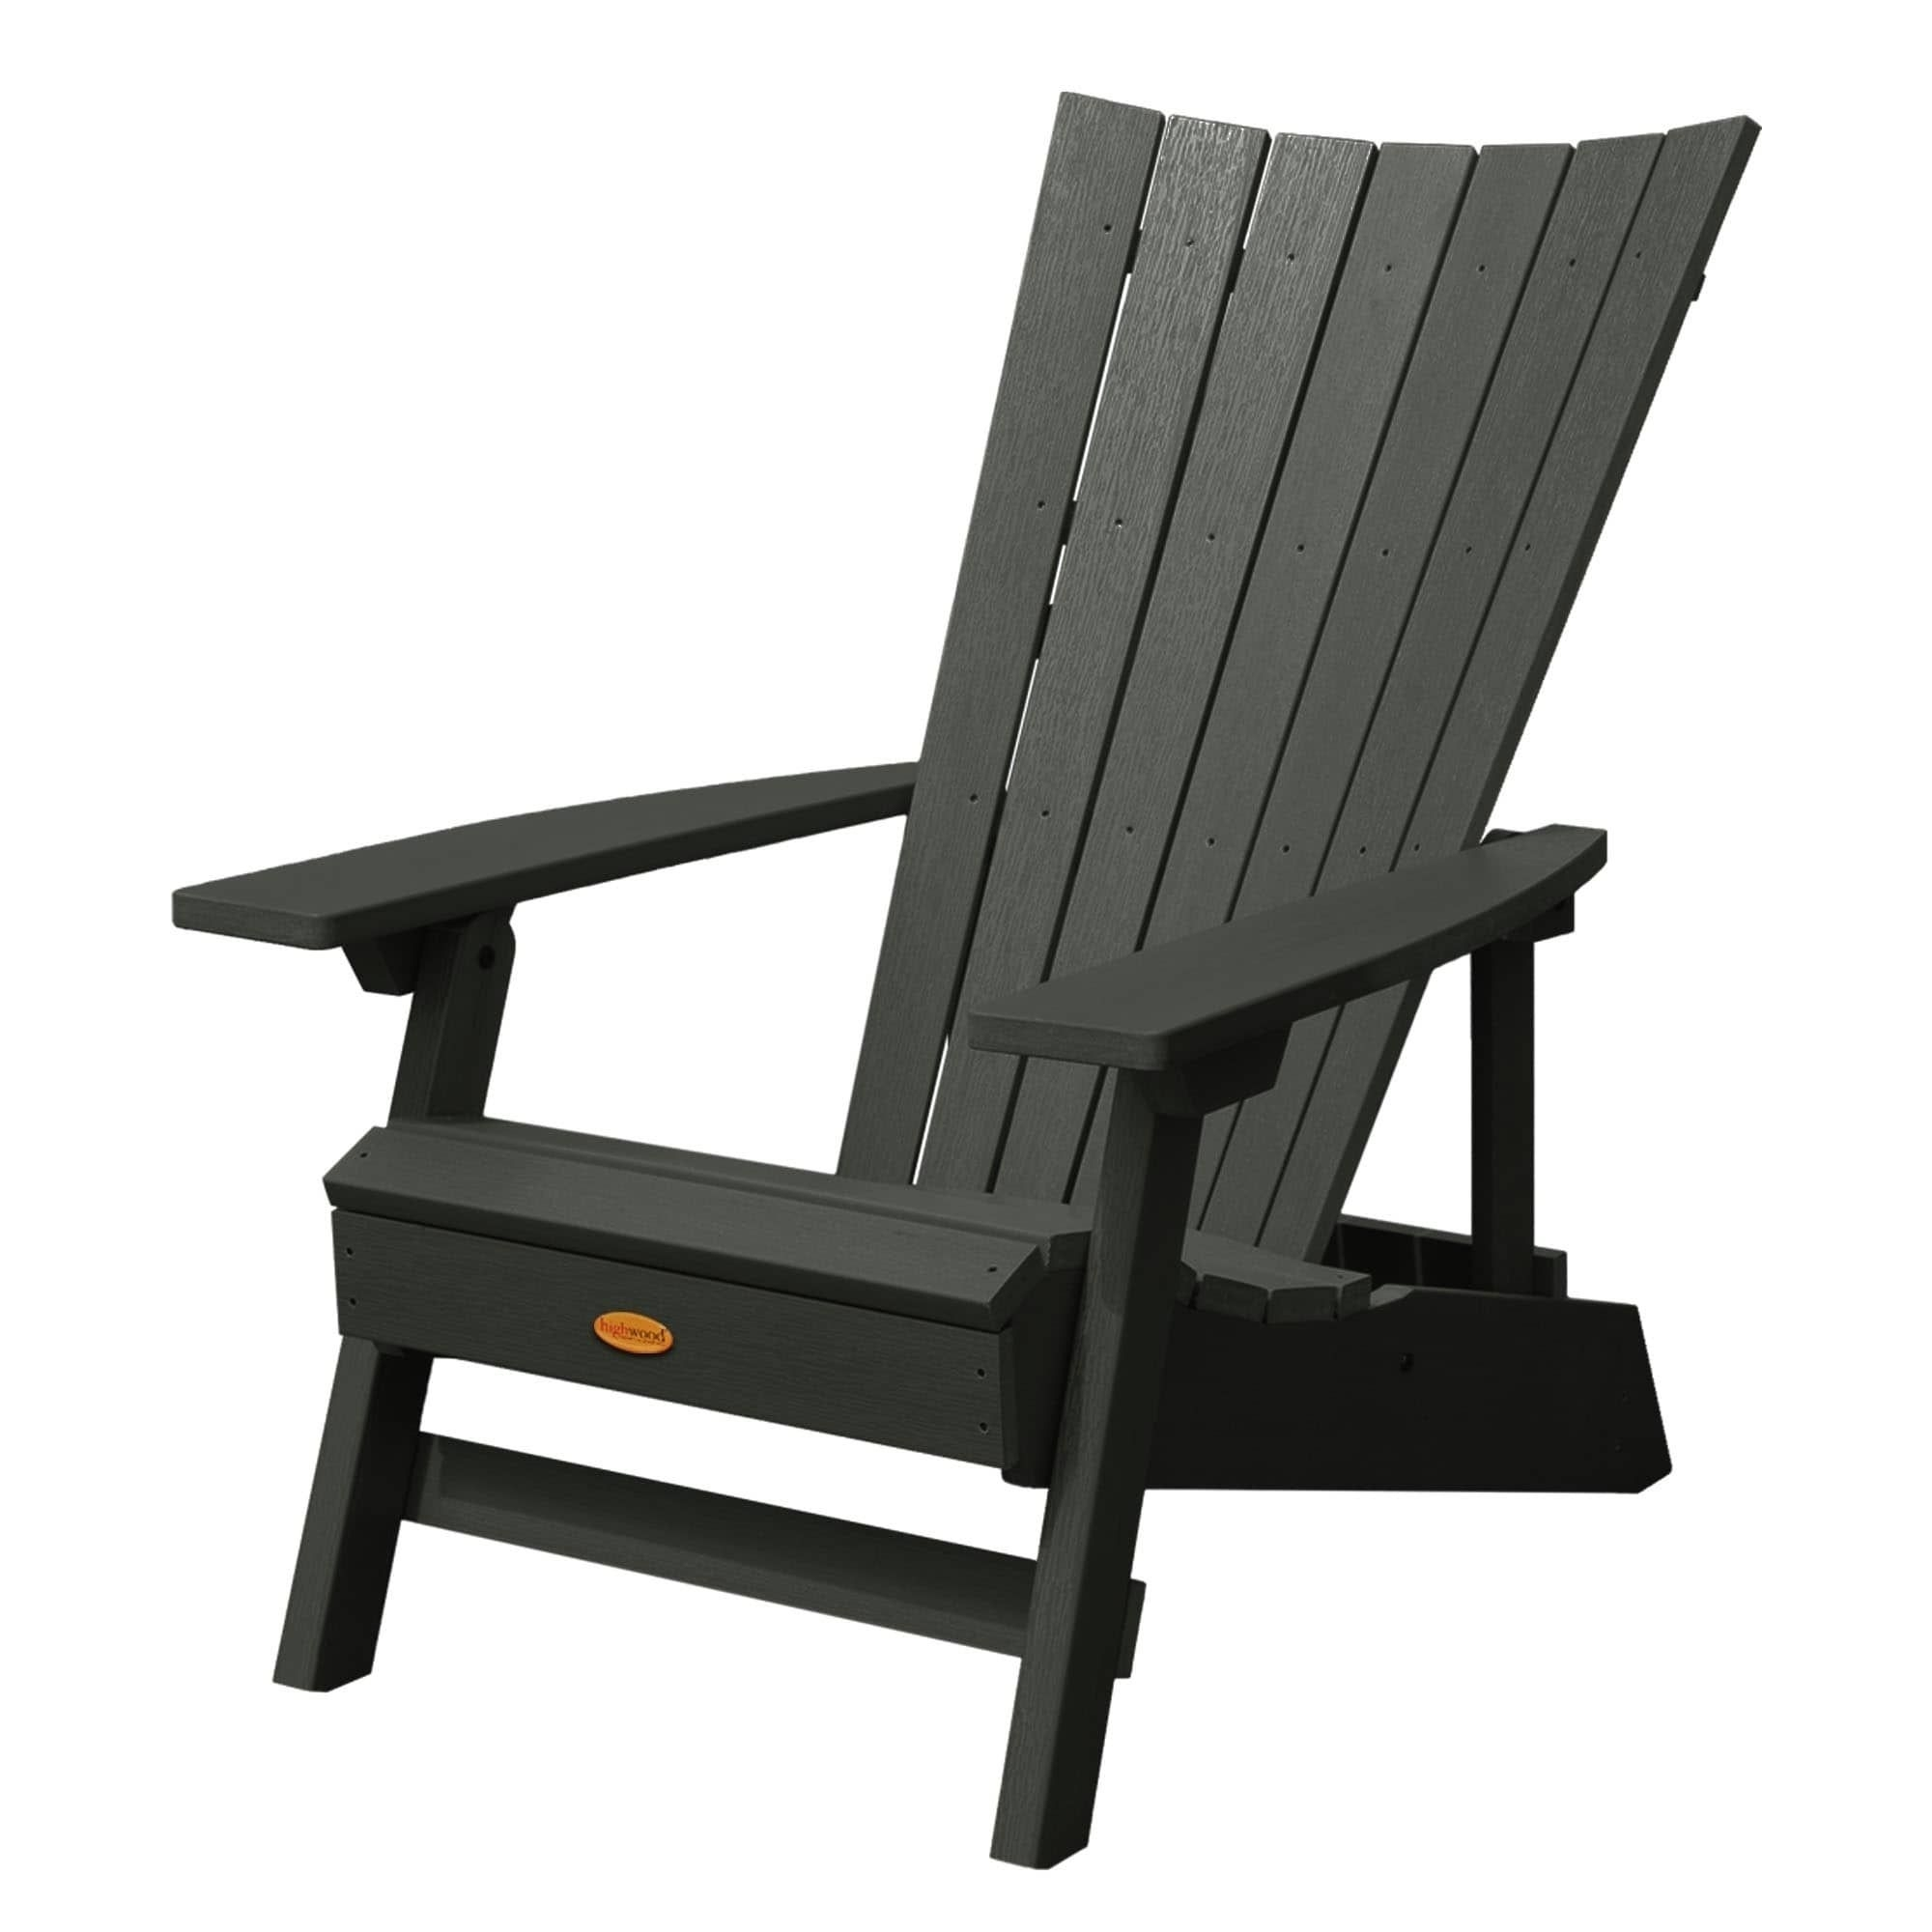 Highwood Manhattan Beach Adirondack Chair (Black), Size Single With Regard To Manhattan Patio Grey Rocking Chairs (#3 of 15)